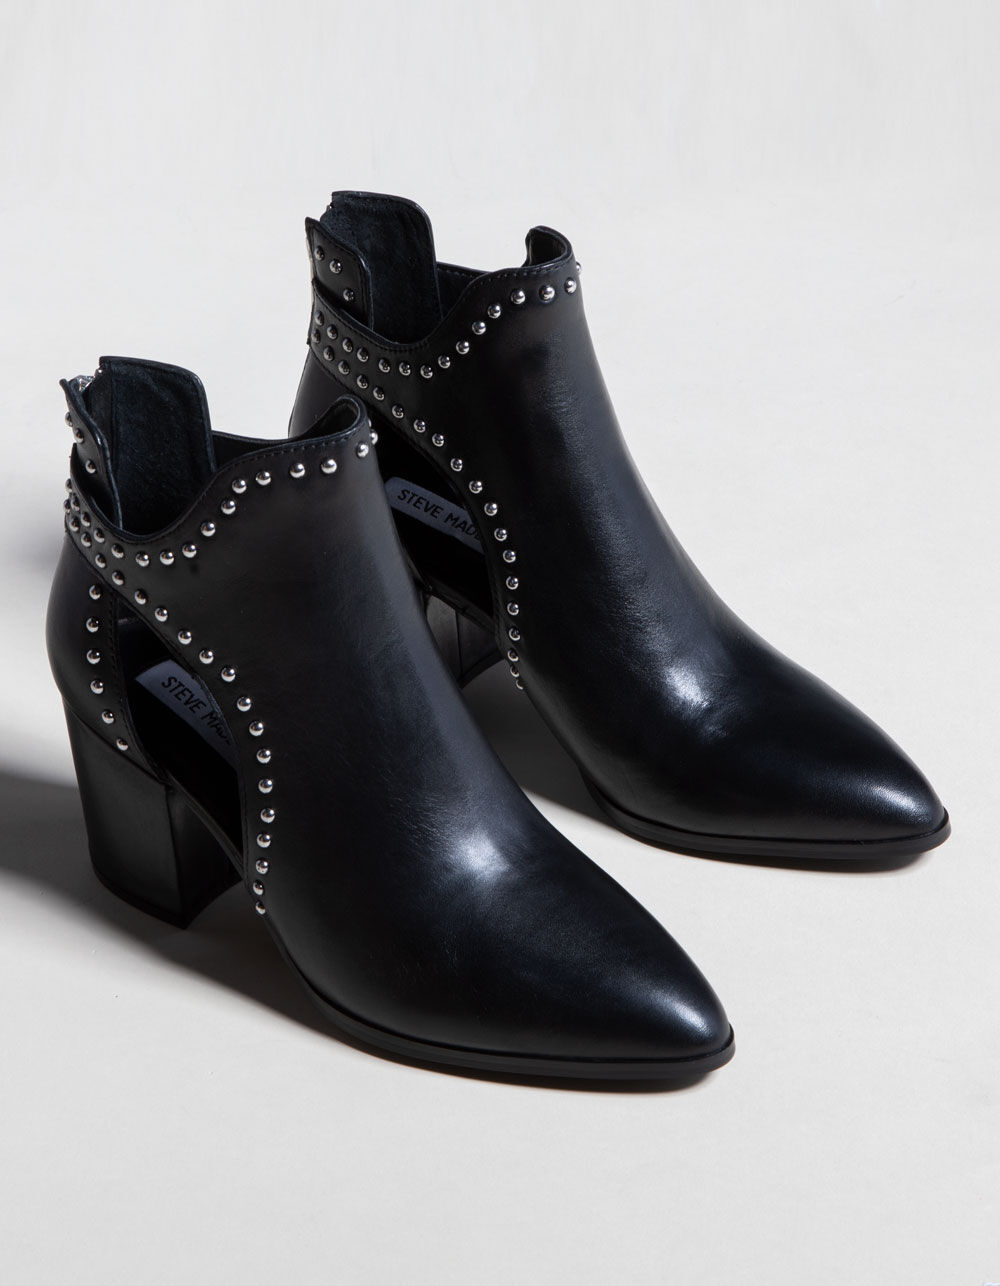 STEVE MADDEN Justice Booties